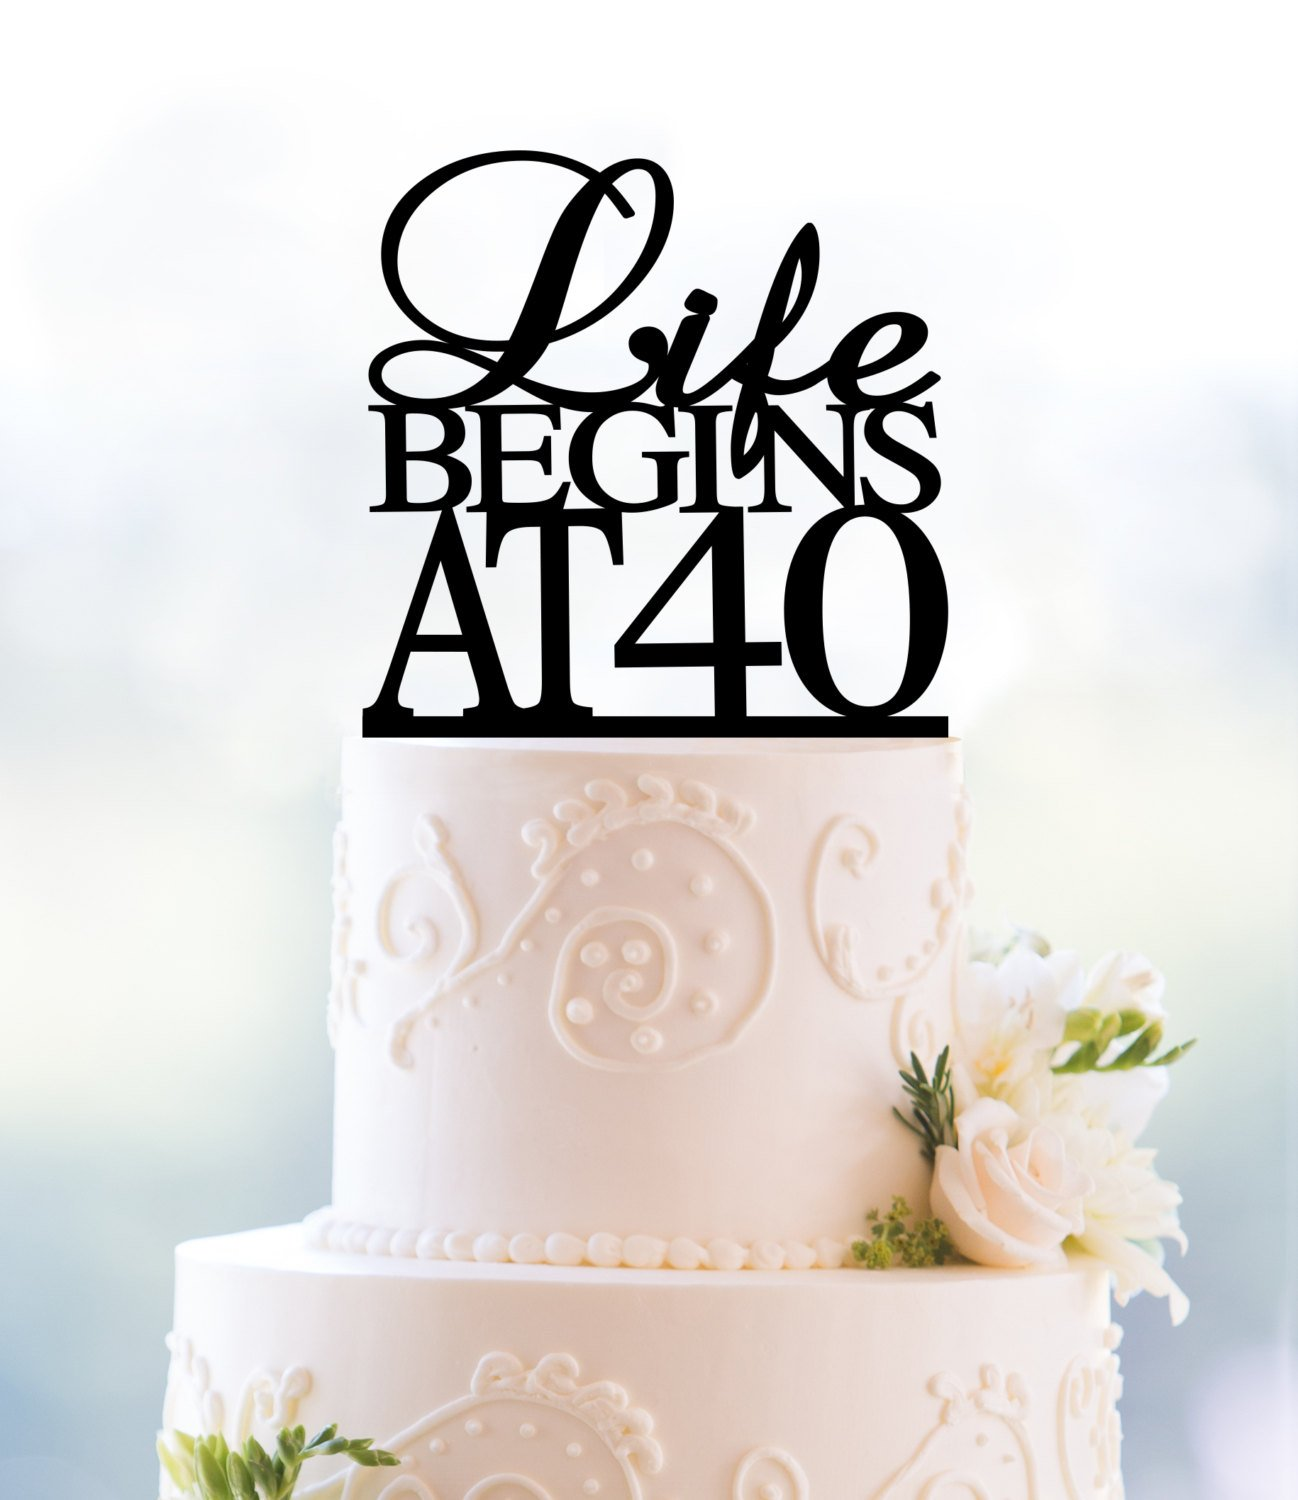 40th Birthday Cake Ideas.Gold Life Begins At 40 Cake Topper 40th Birthday Cake Topper 40th Party Decor Fortieth Cake Topper Glamour Party Decoration T089